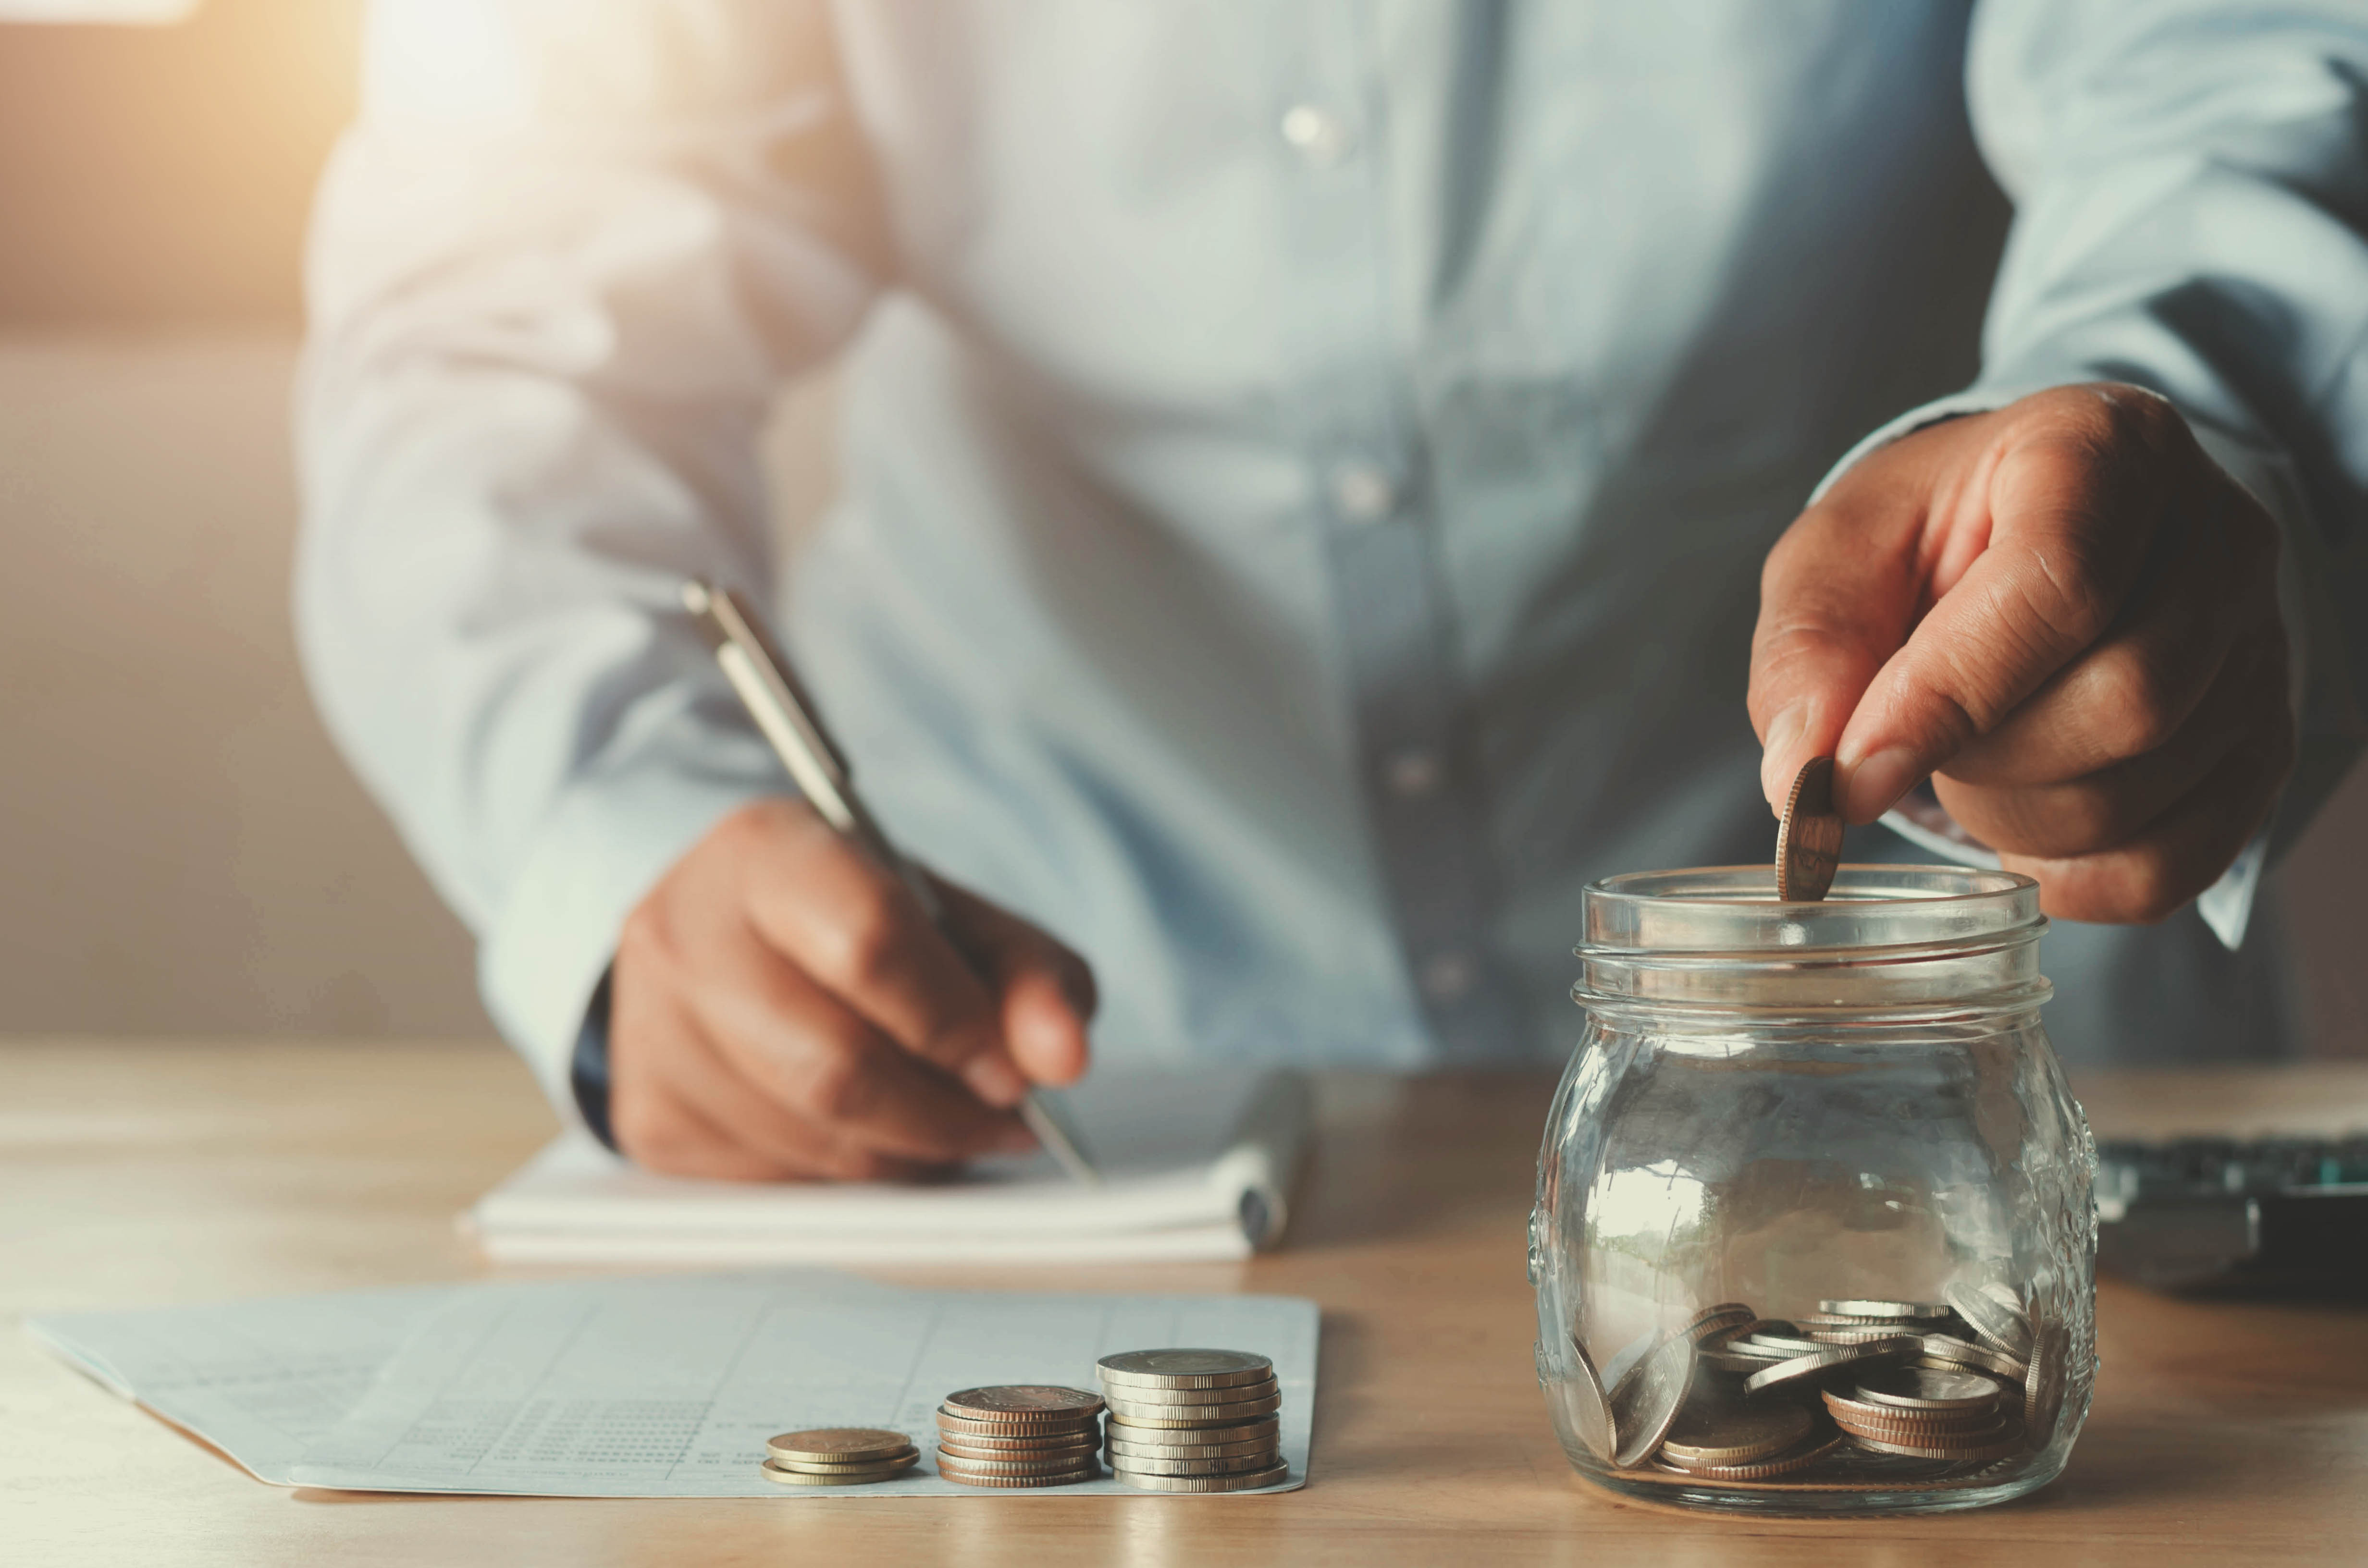 Top Tips to Make Your Money Go Further